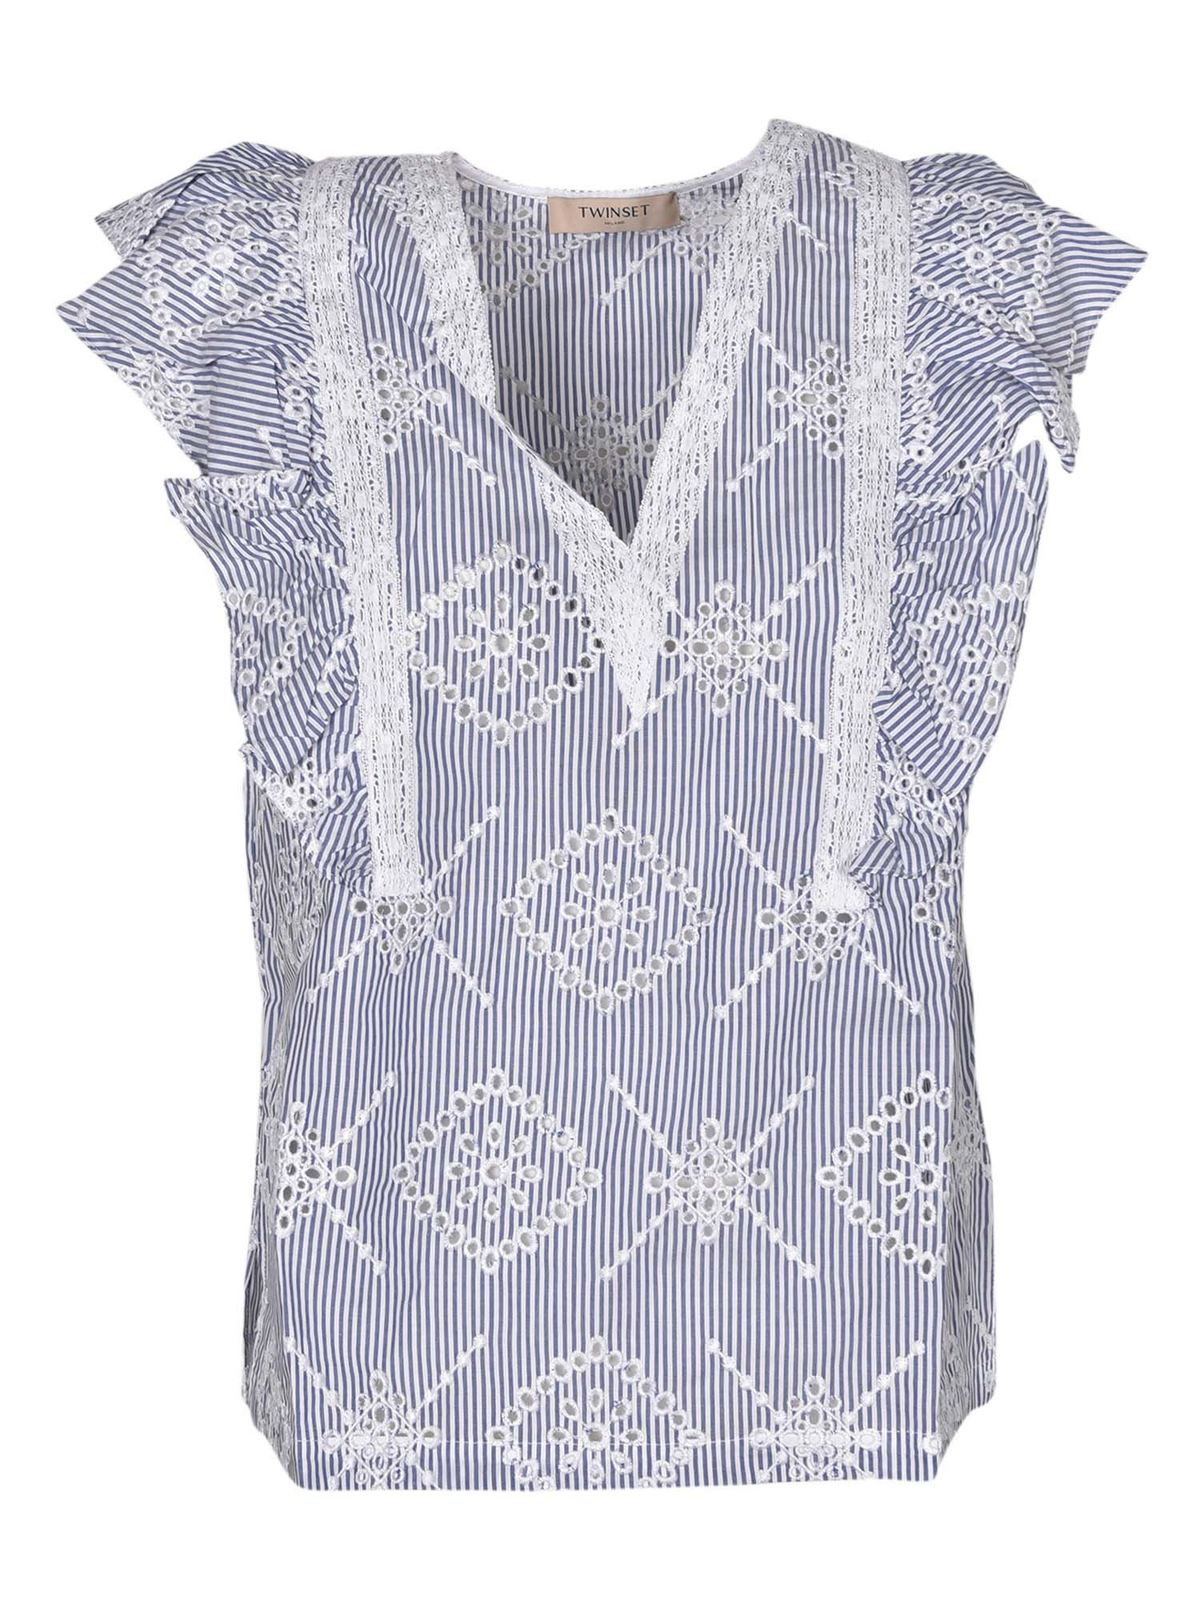 Twinset EMBROIDERED STRIPED TOP IN WHITE AND BLUE